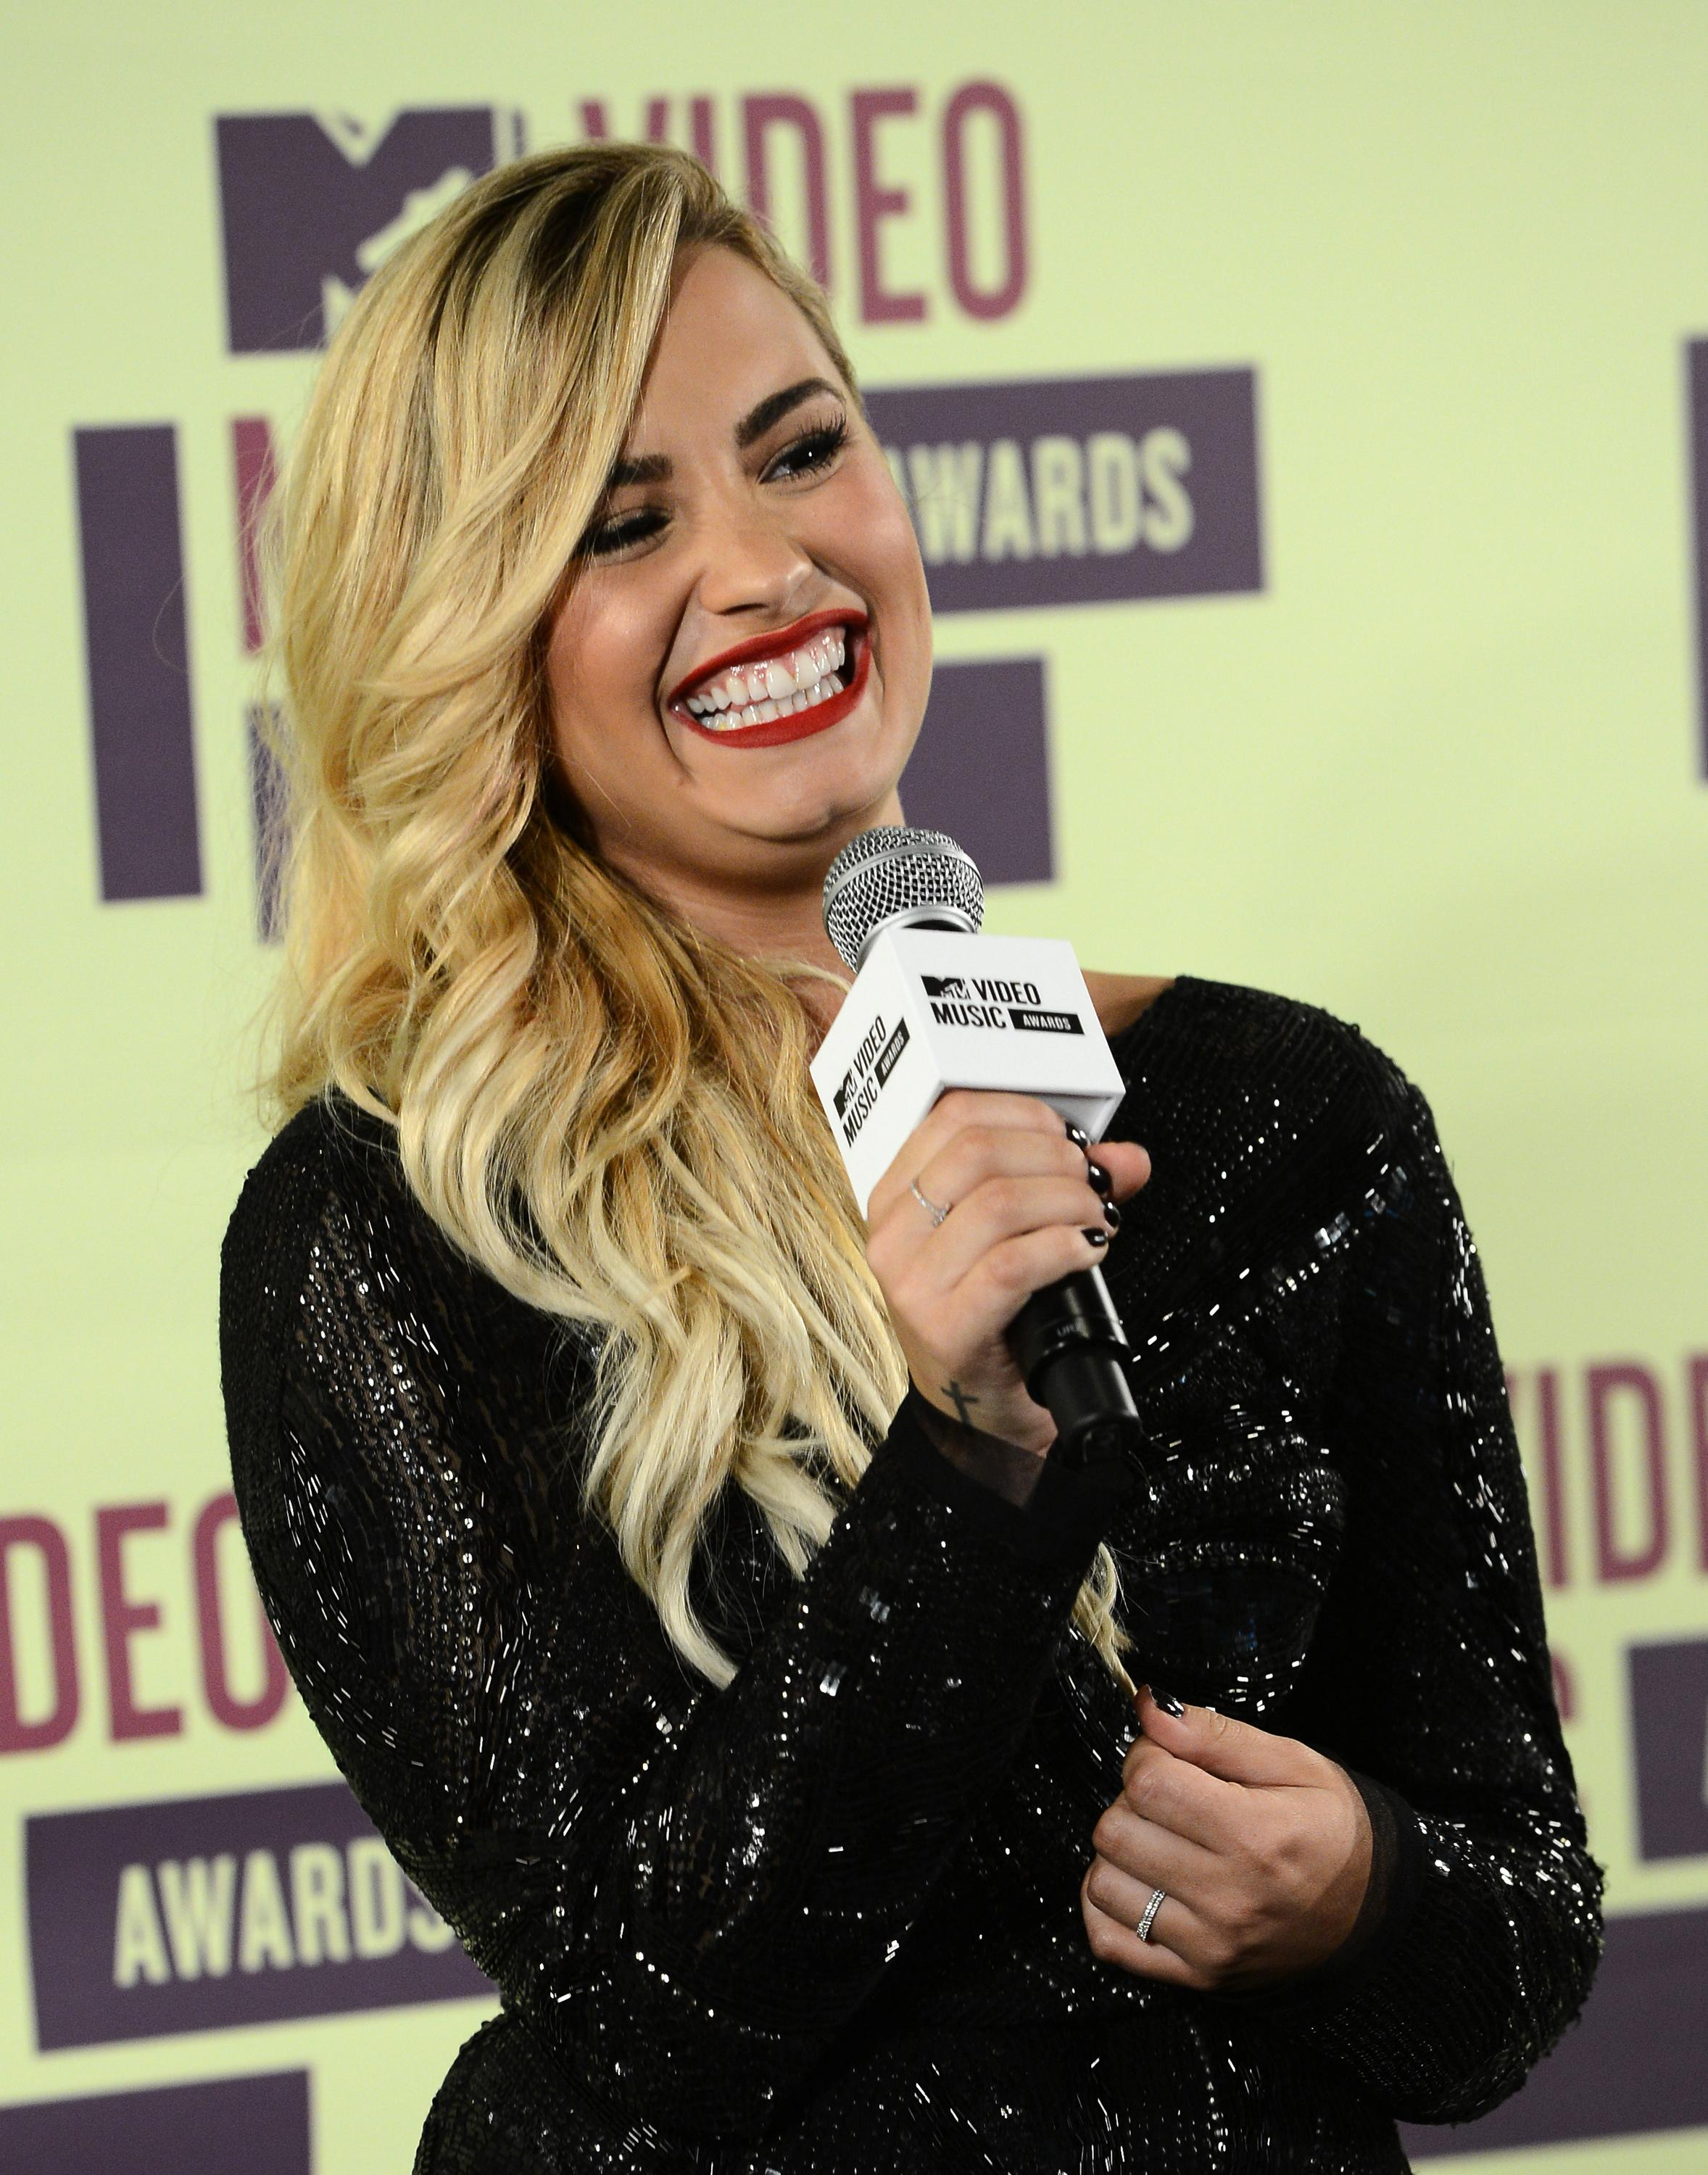 998875600_Demi_Lovato_2012_MTV_Video_Music_Awards2_122_100lo.jpg